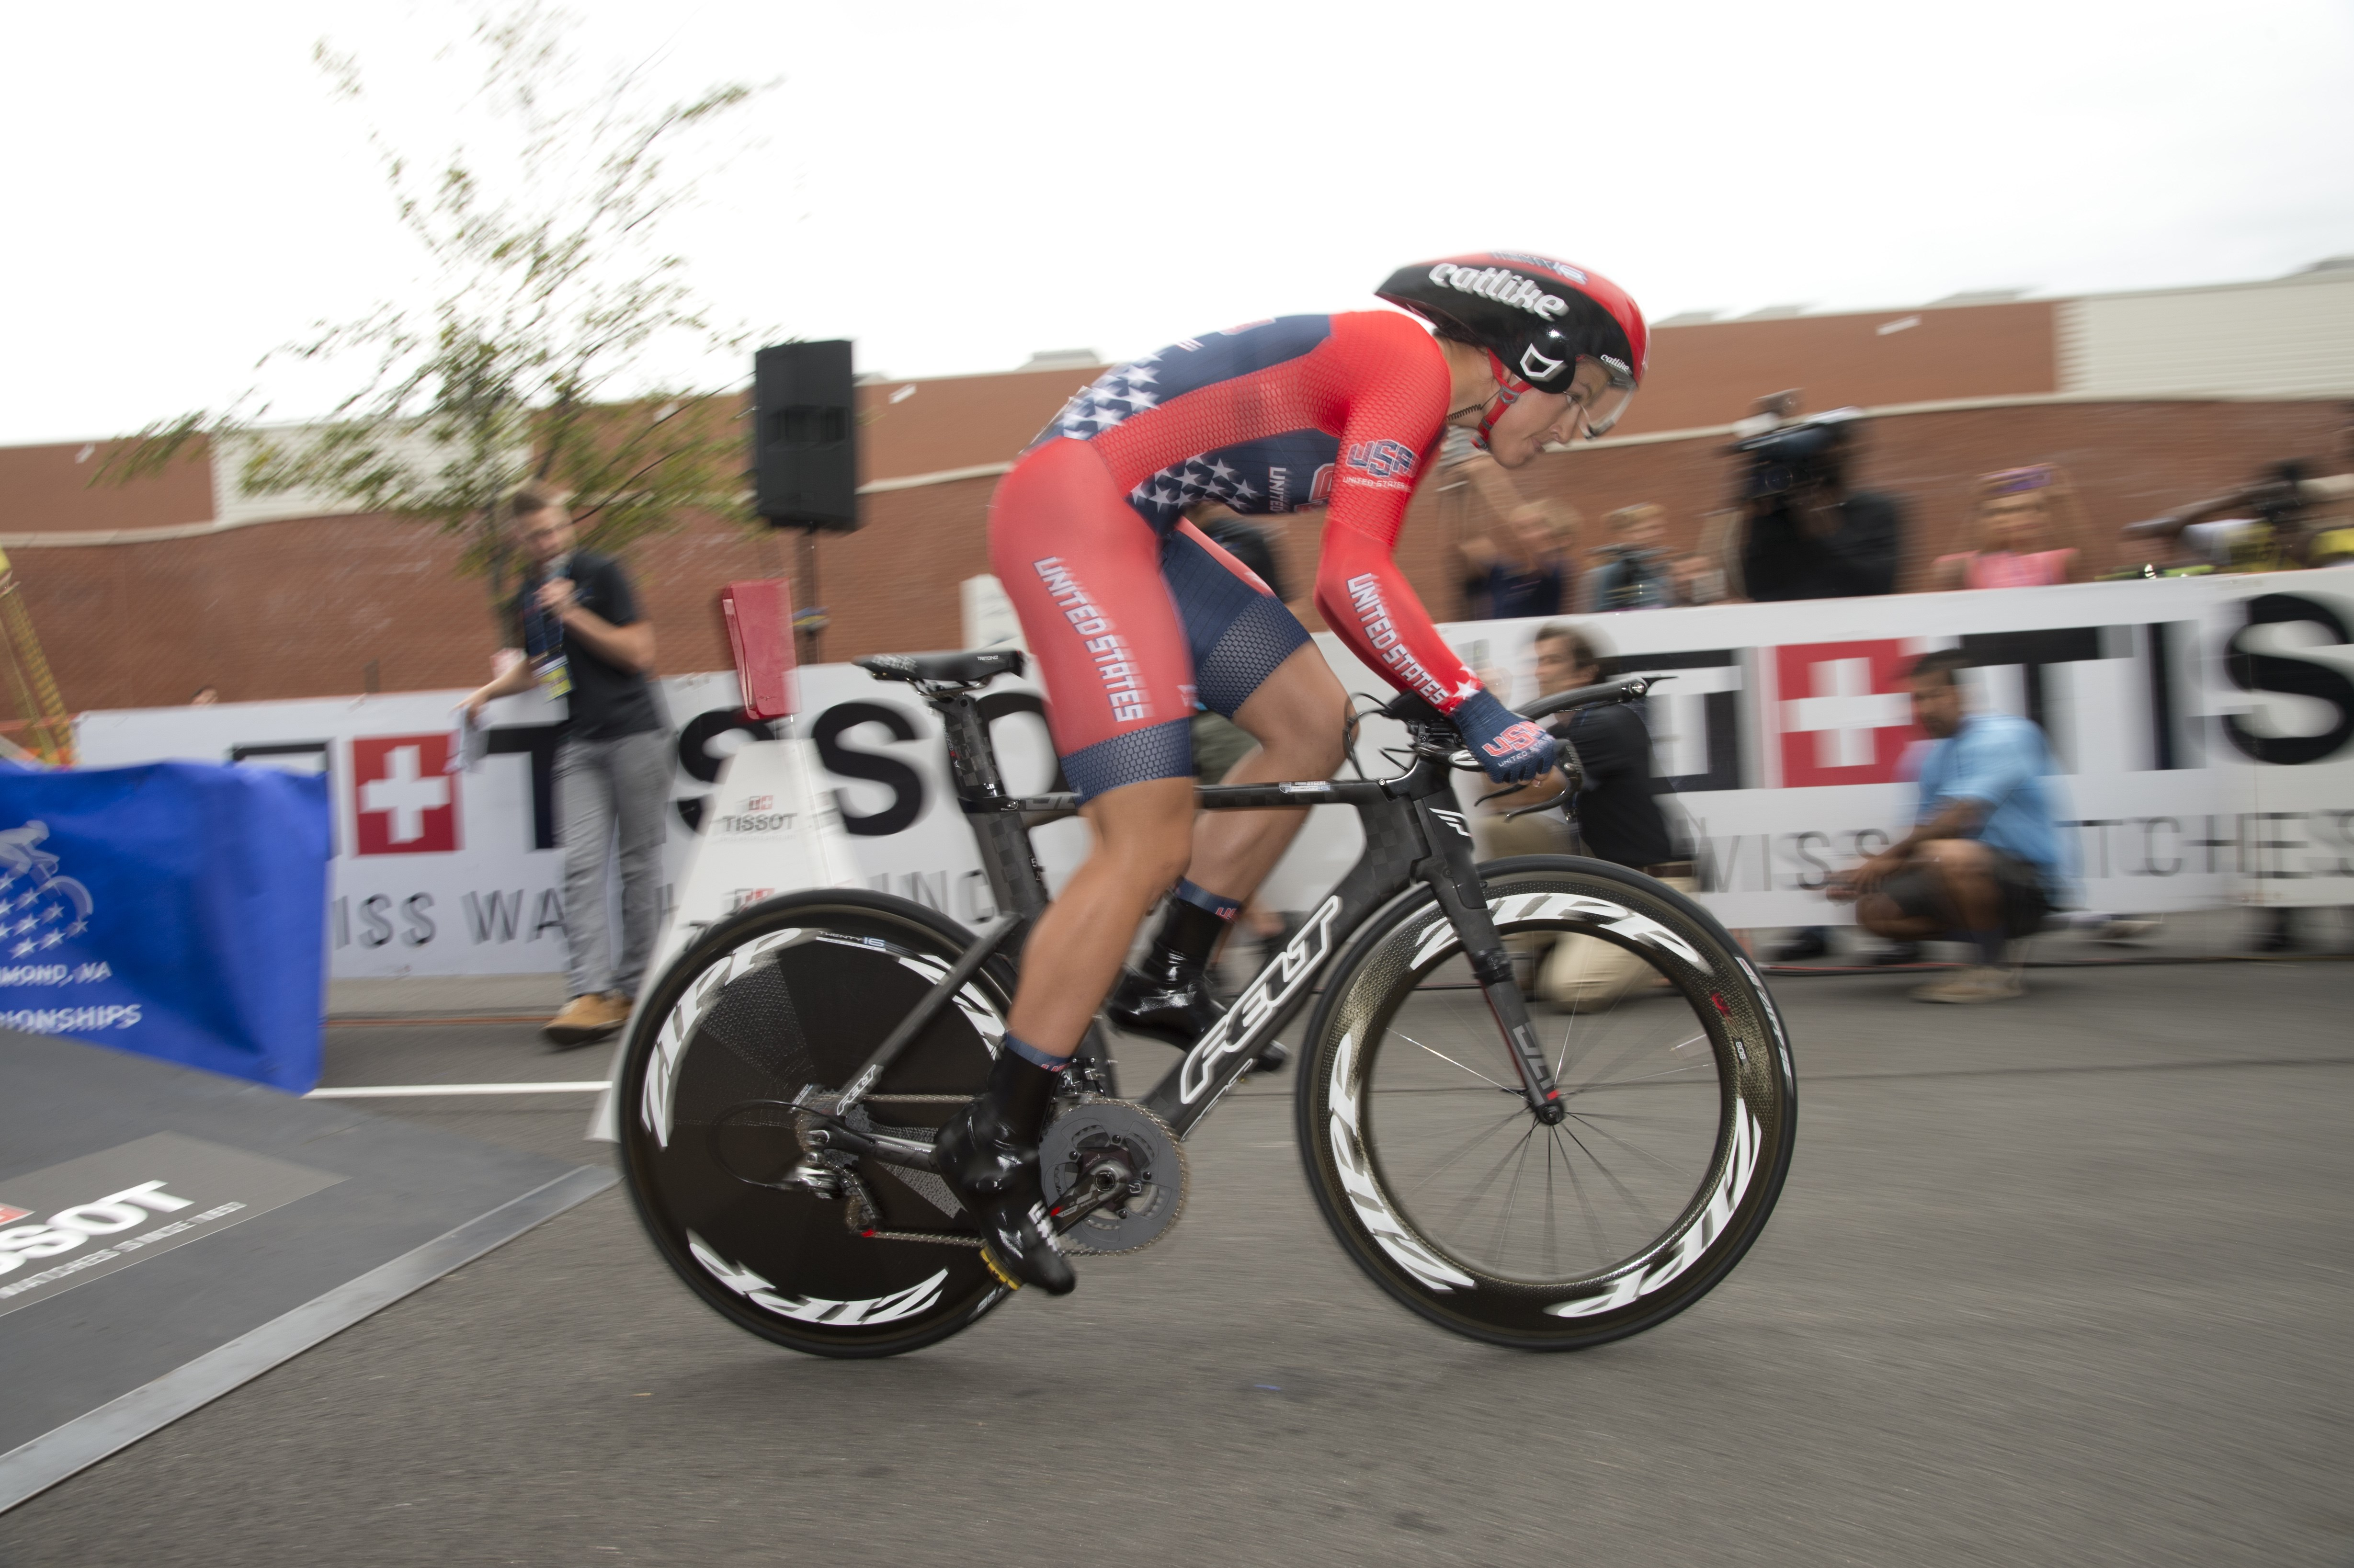 Chloe Dygert, of the United States, starts the Junior Women's Time Trials for the UCI Road World Championships in Richmond, Va., Monday, Sept. 21, 2015.  Dygert won the event.  (Casey B. Gibson/Richmond 2015/Pool via AP)